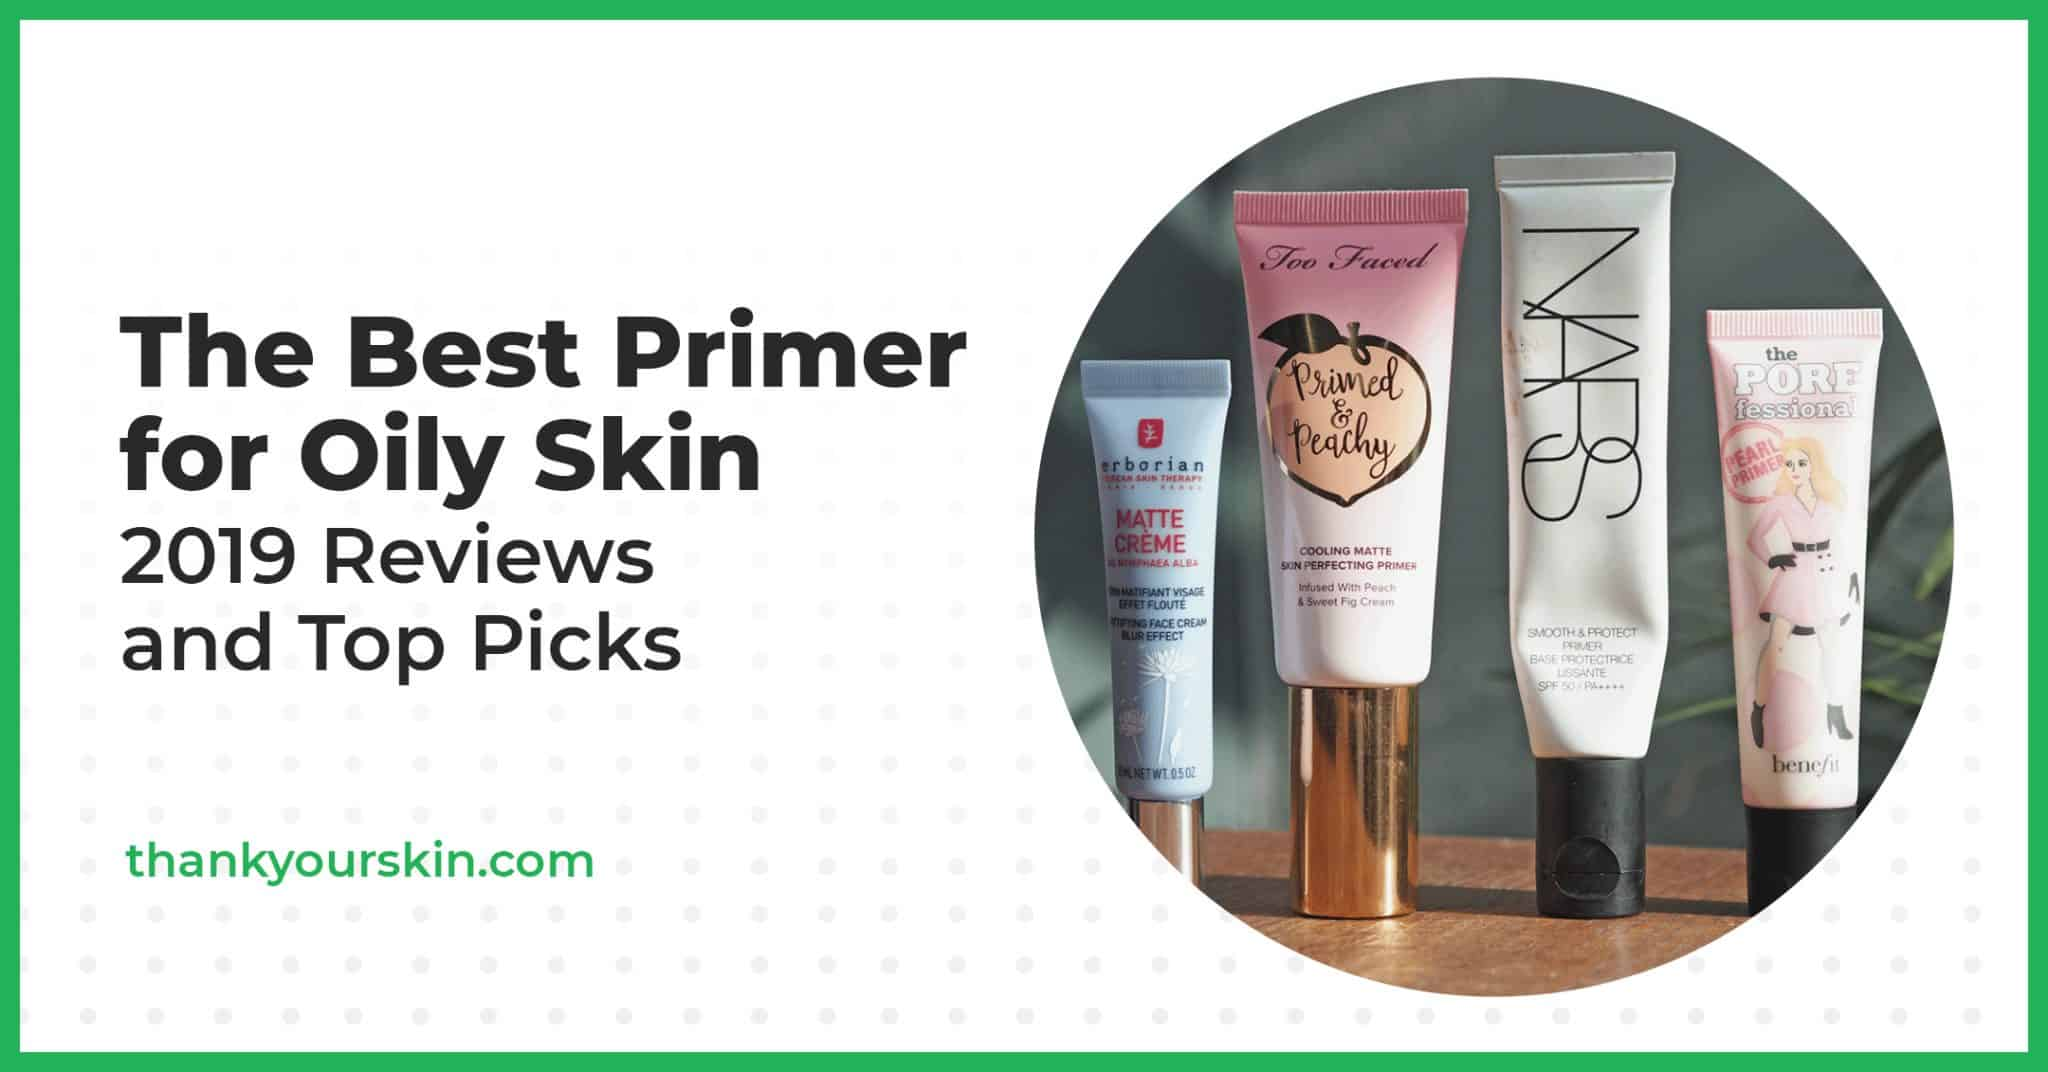 The Best Primer for Oily Skin—2021 Reviews and Top Picks